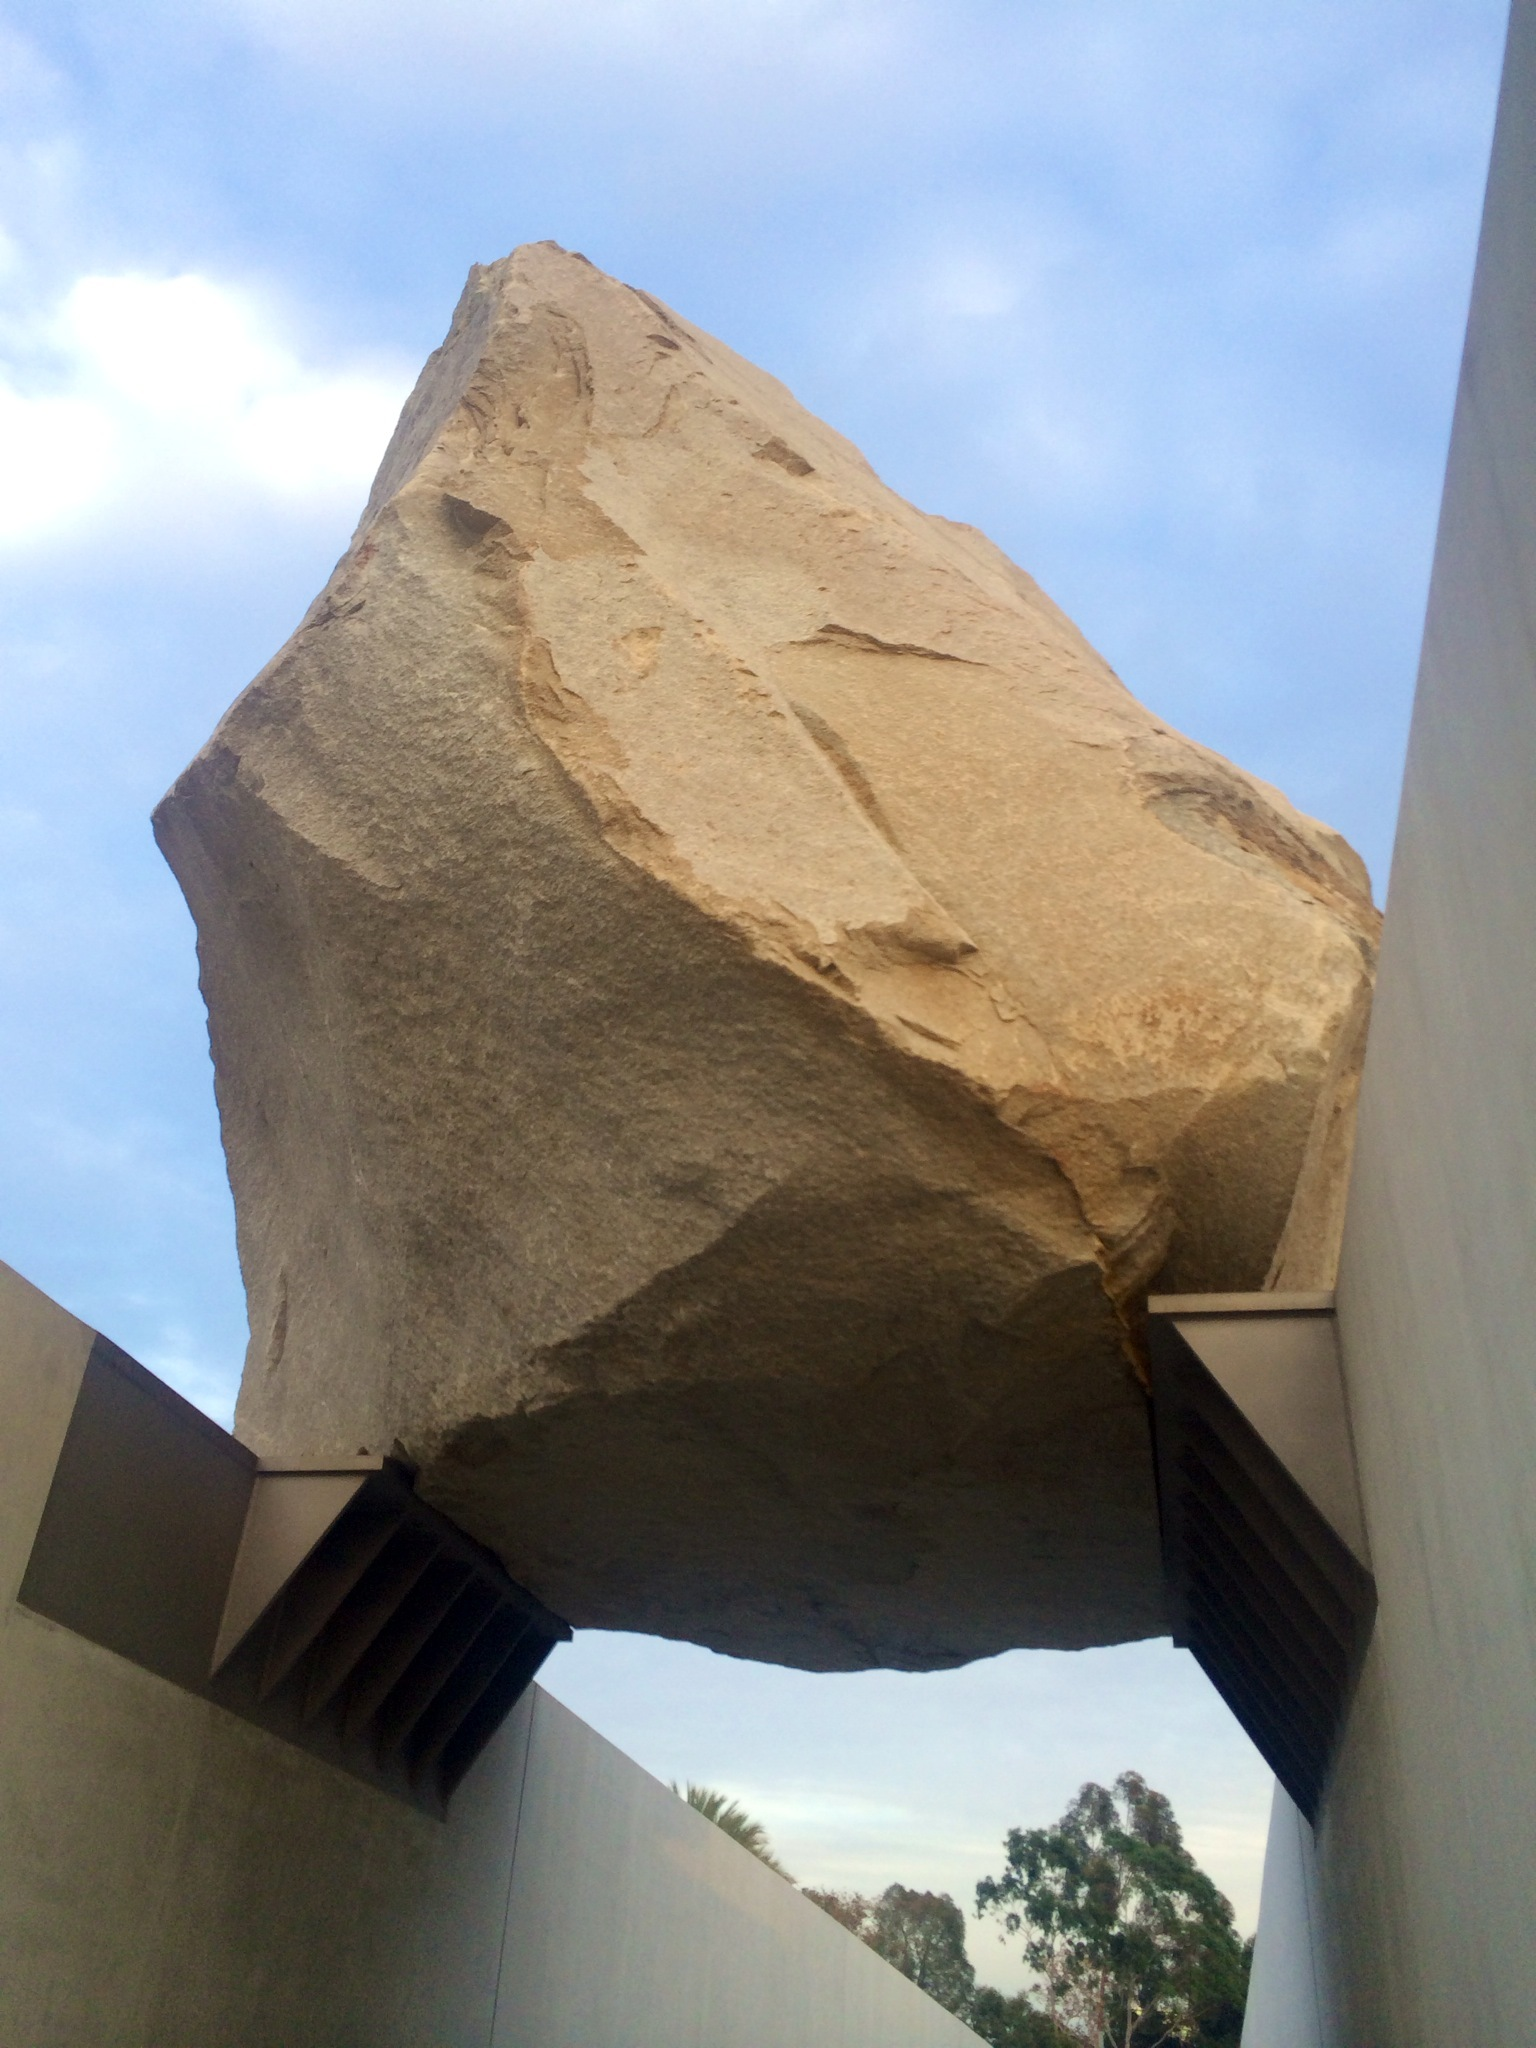 Levitated Mass By Michael Heizer At Lacma